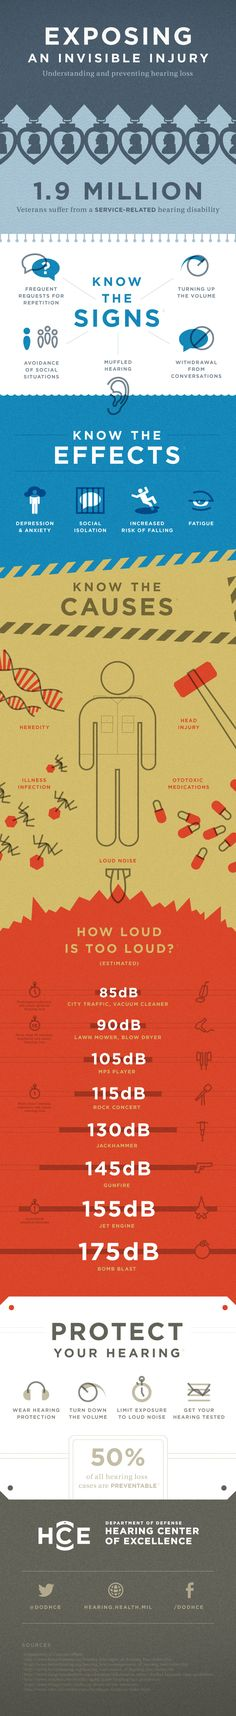 This infographic provides an overview of the common causes and consequences of hearing loss. It provides tips to guard against noise-induced hearing l